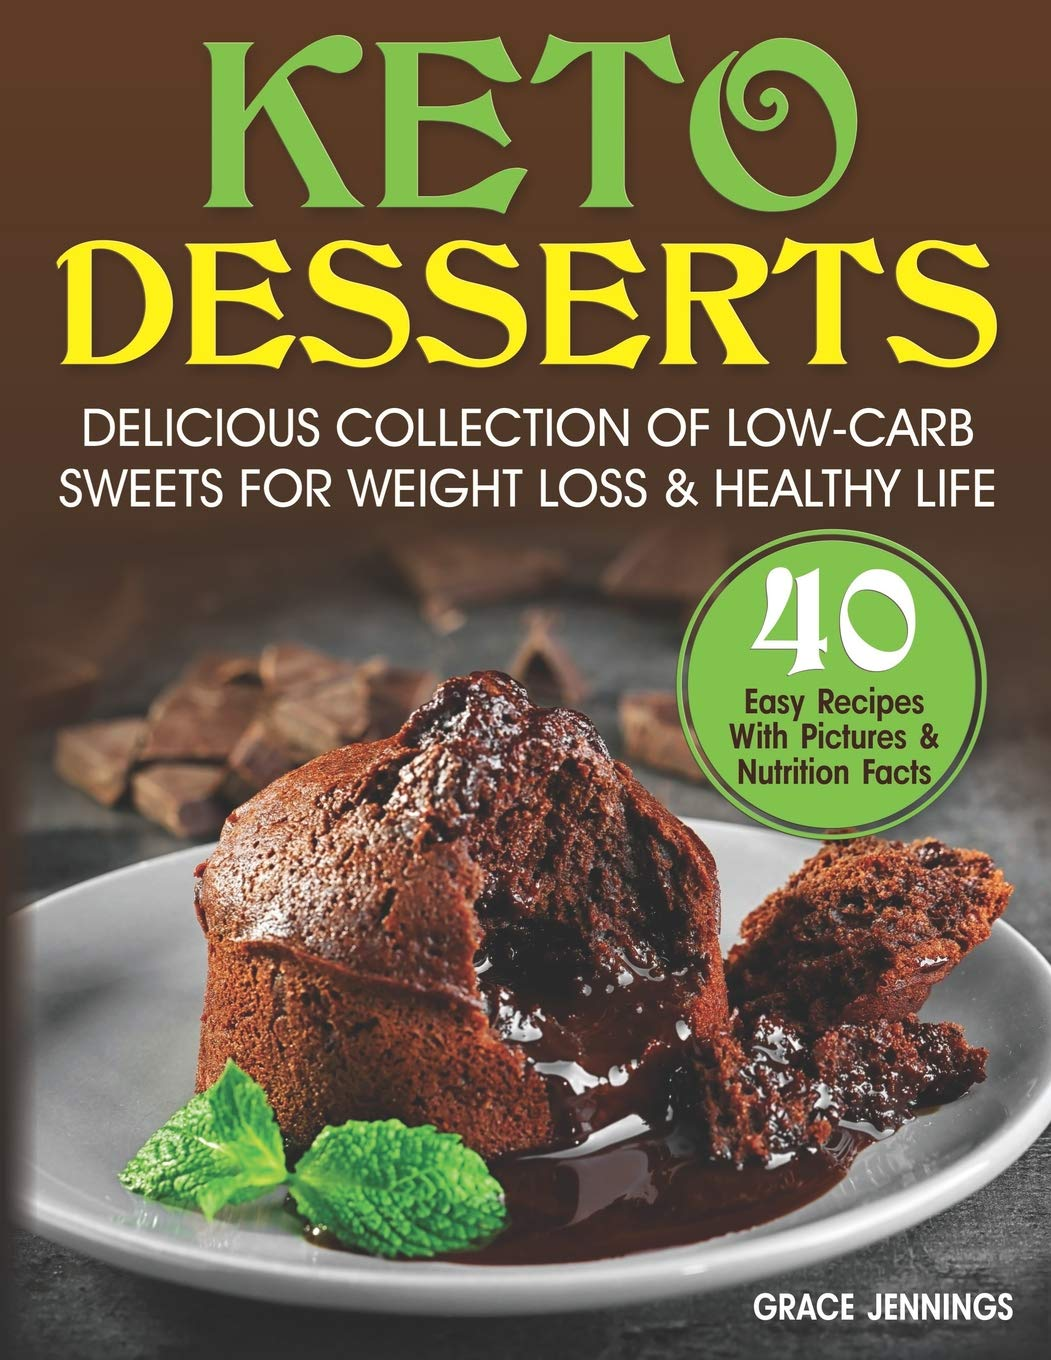 20% Off Online Coupon Keto Sweets June